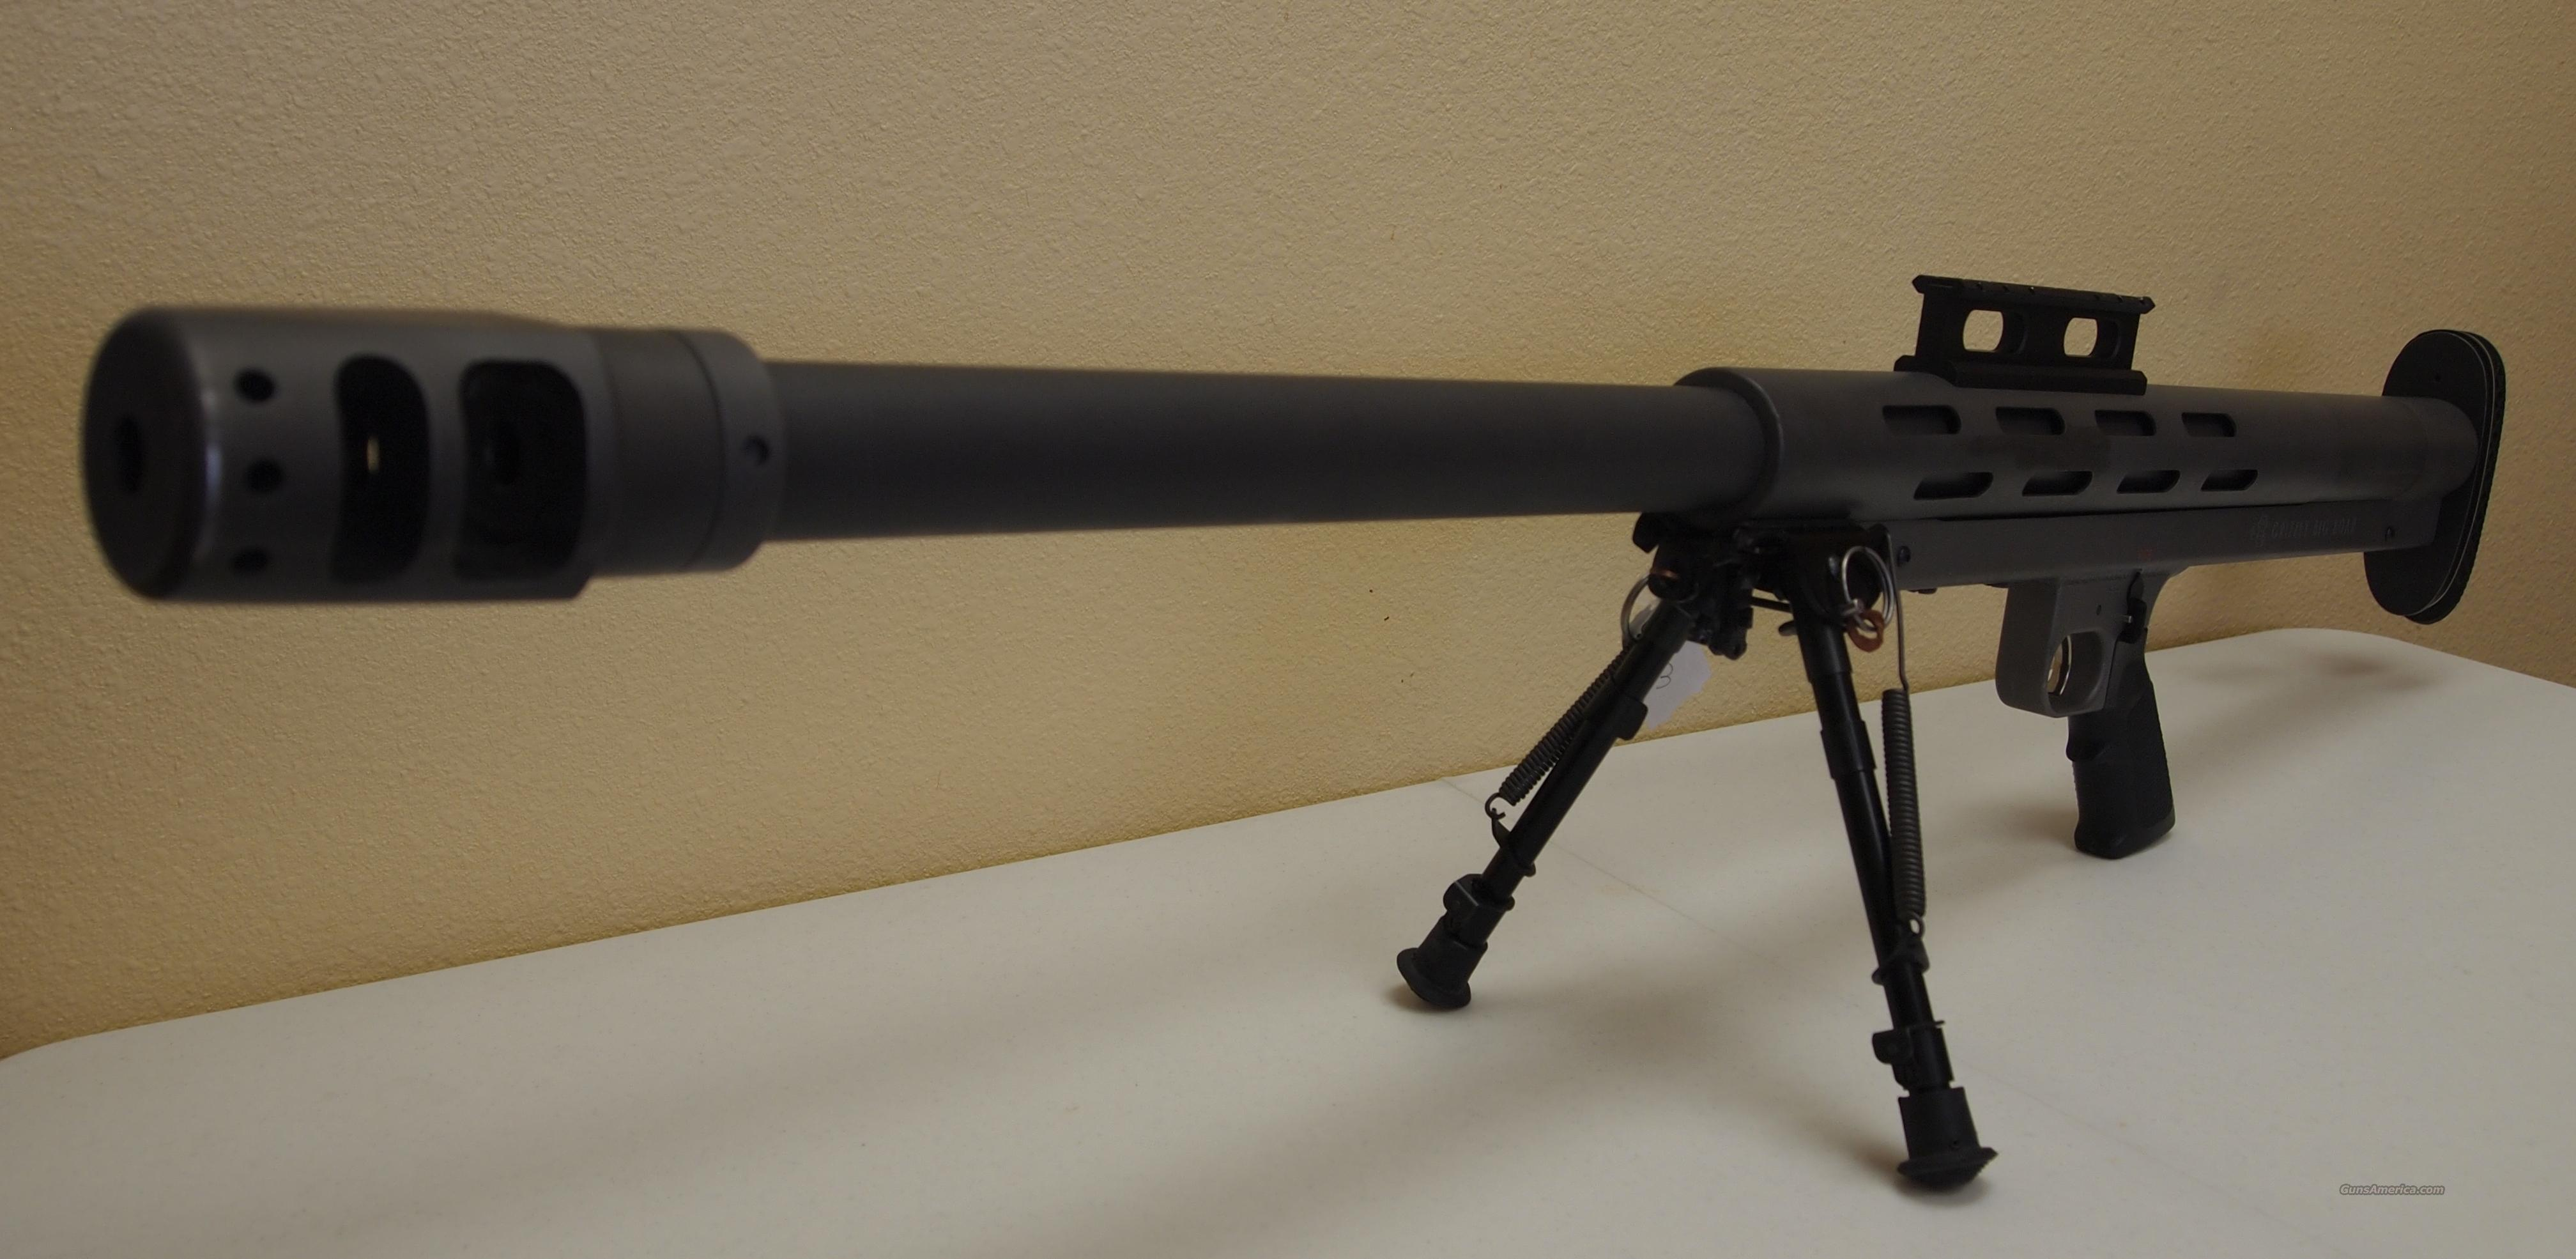 Lar Grizzly 50 Bmg For Sale